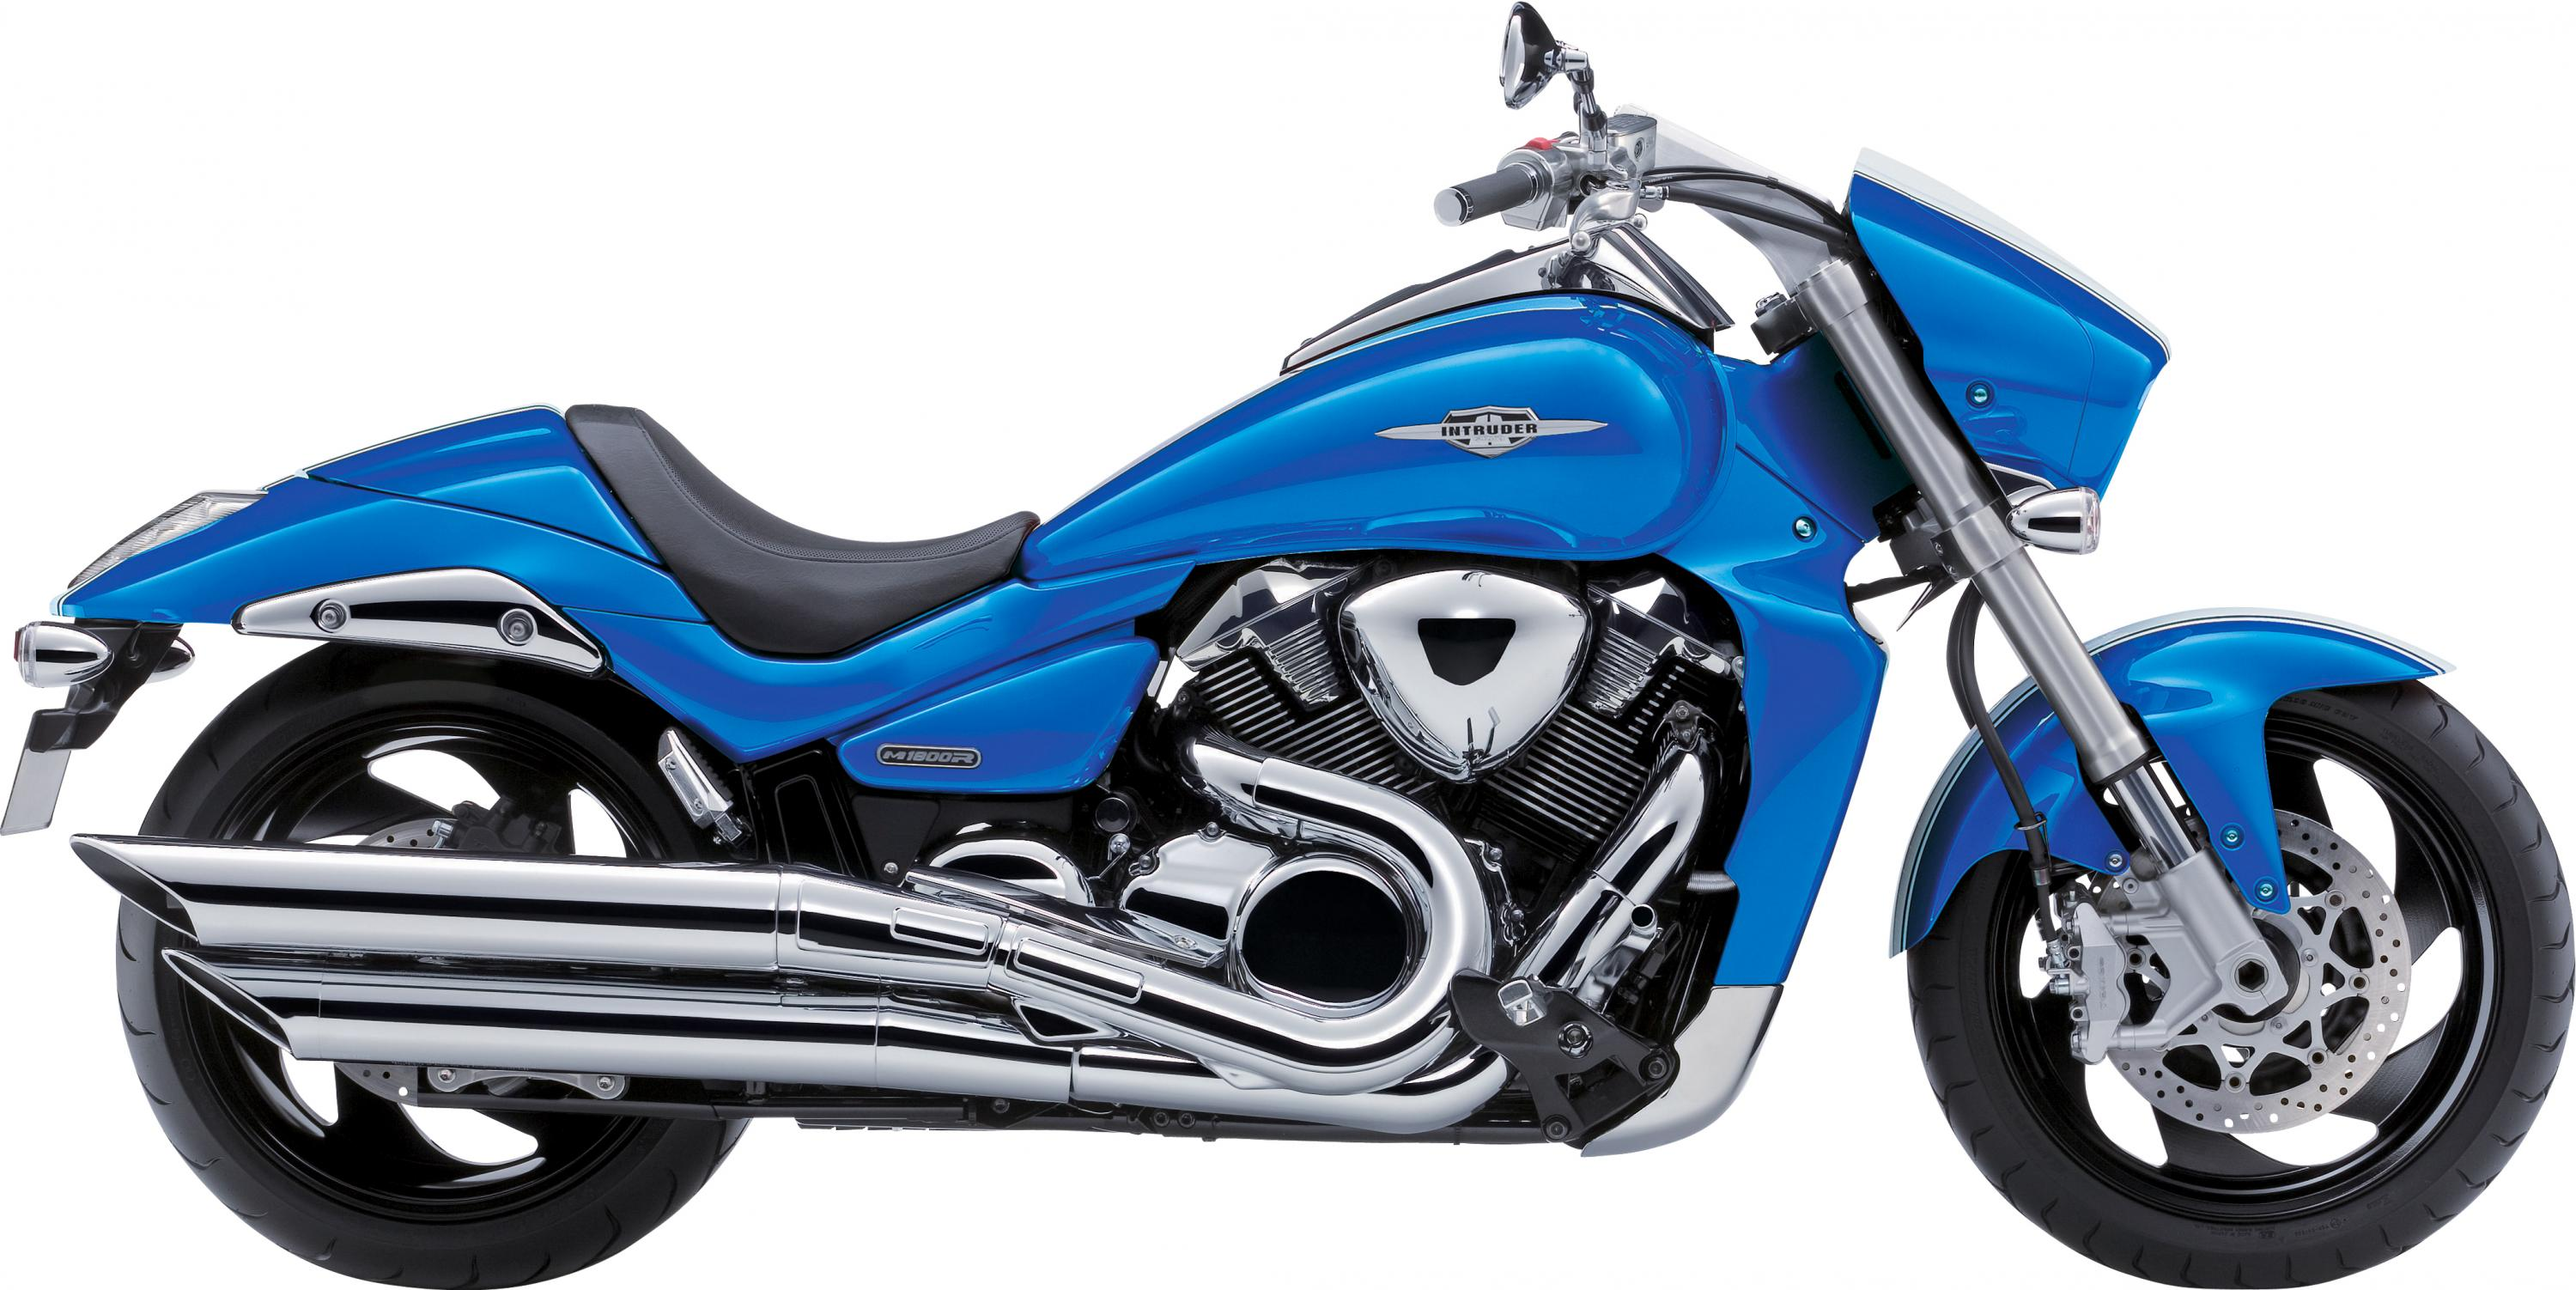 Review Suzuki Intruder M1800r For Sale The Bike Market Customized M109